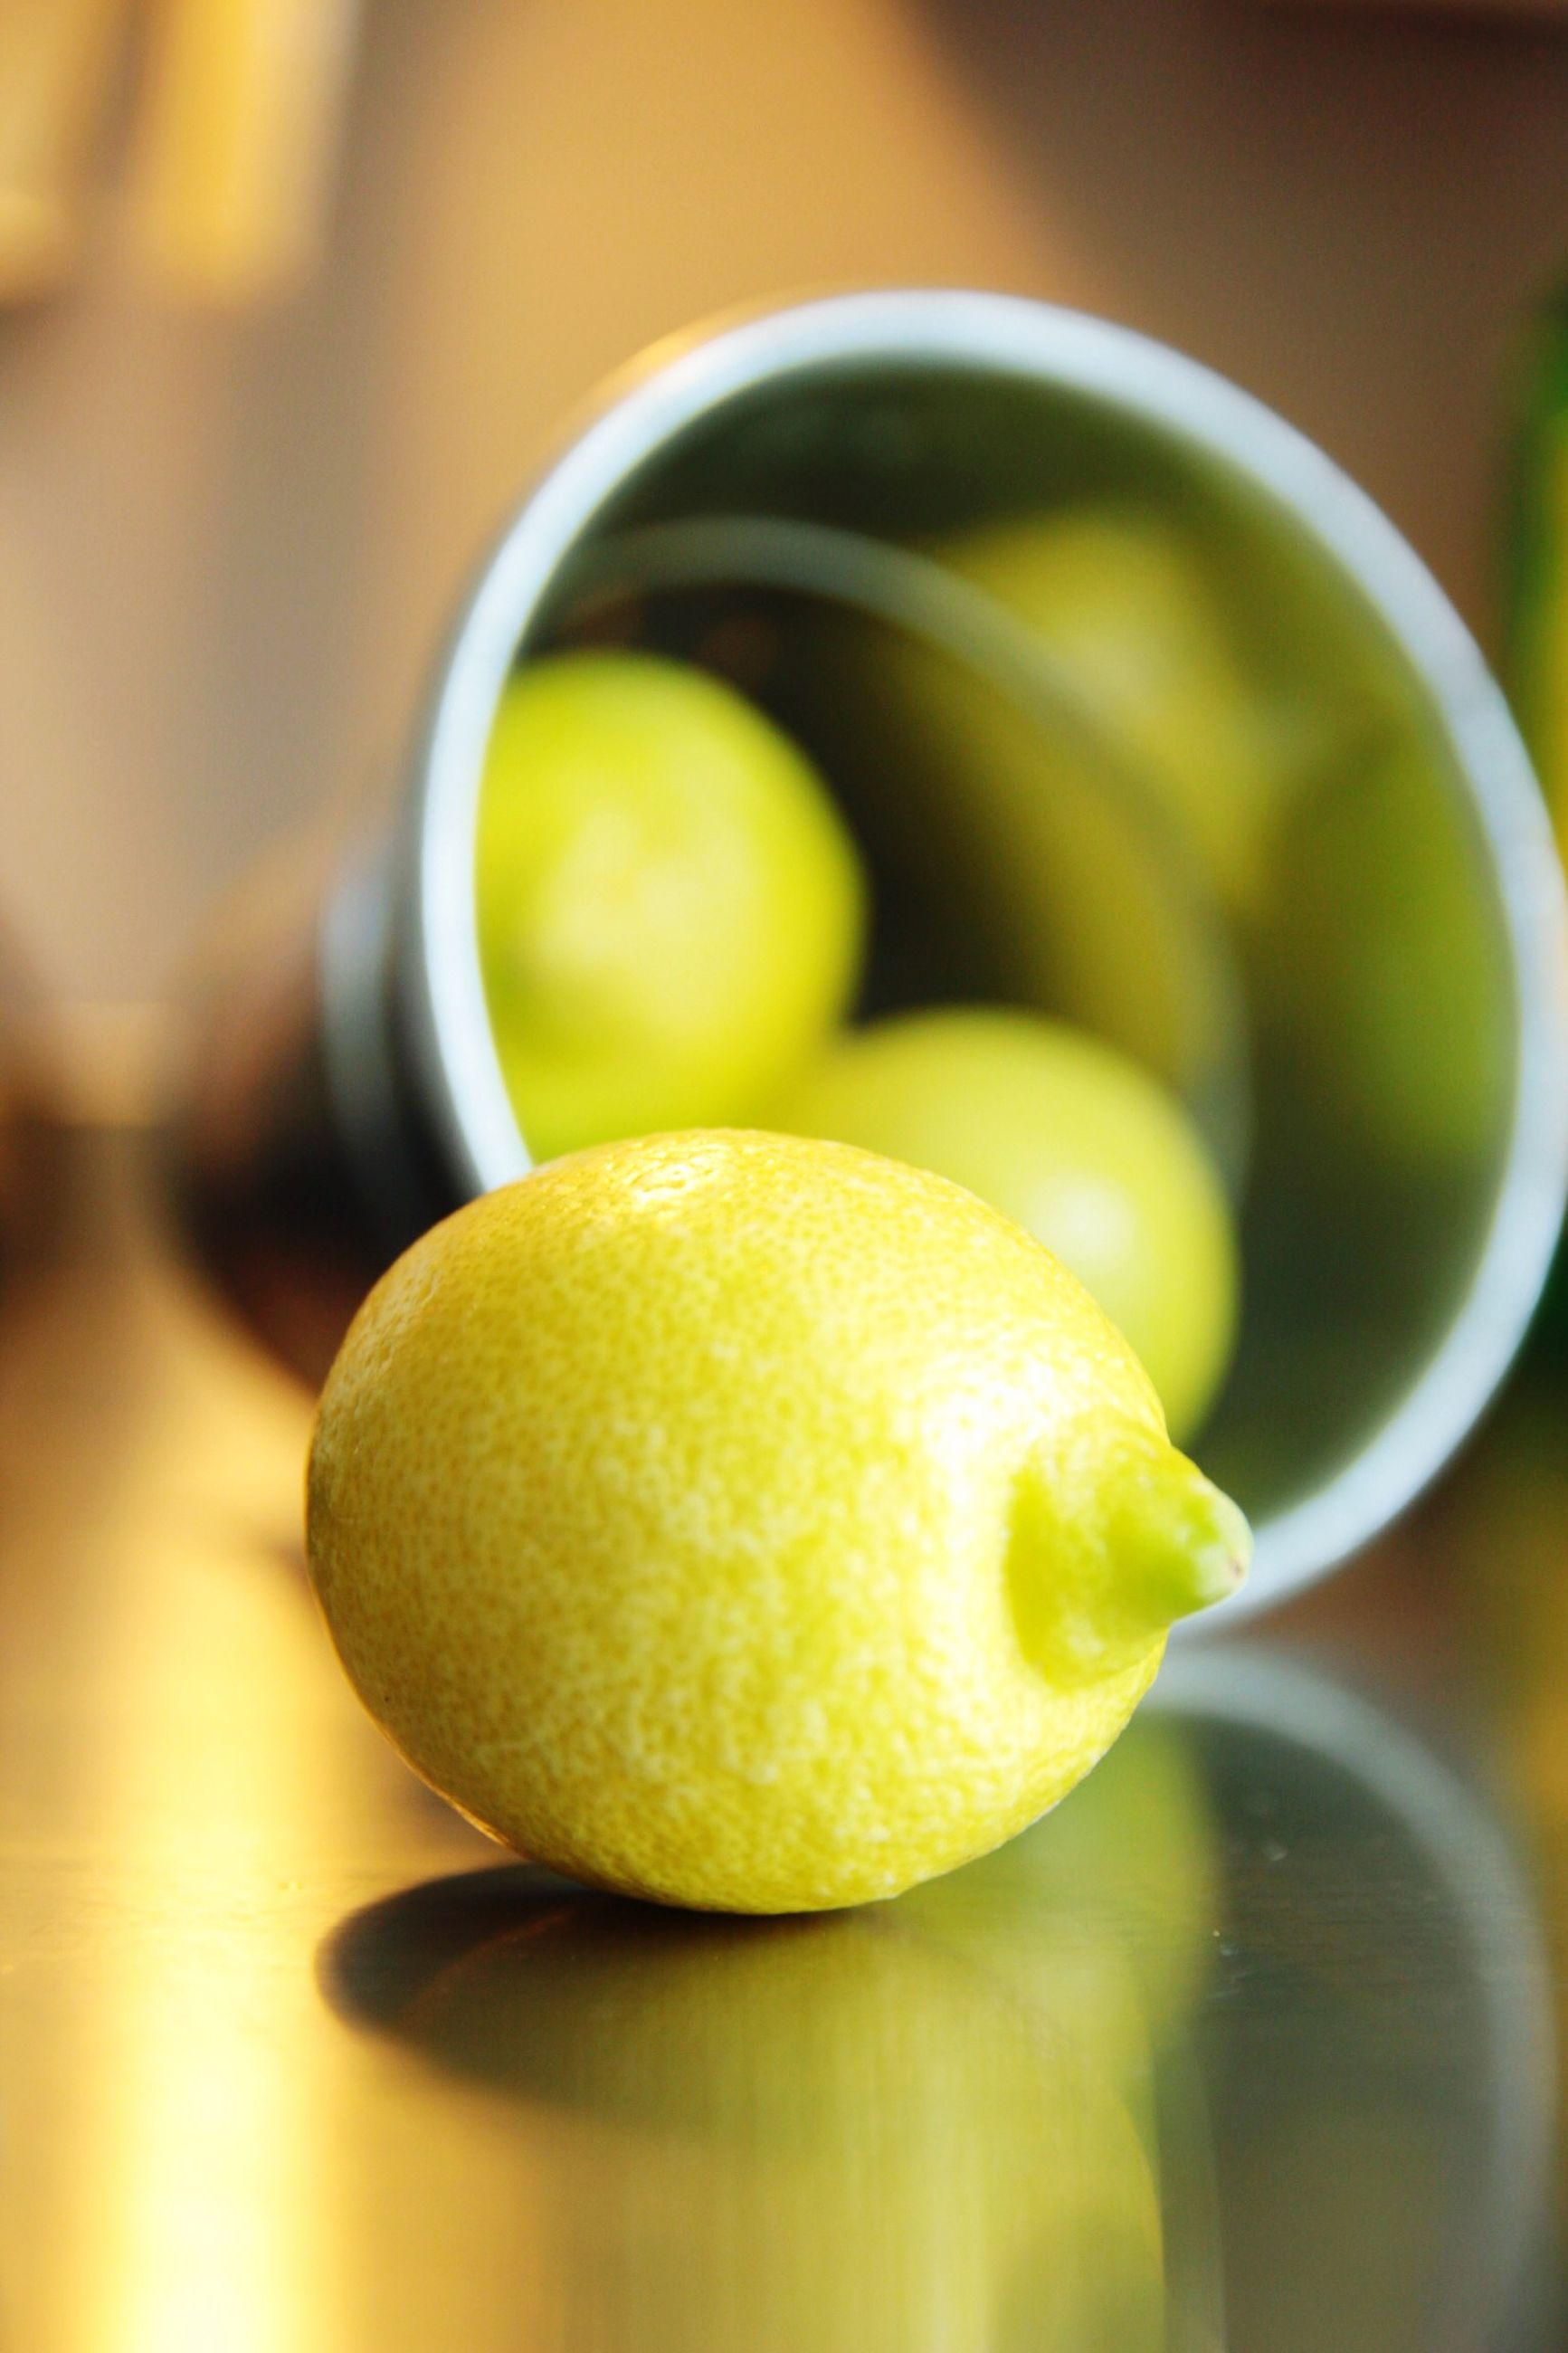 food and drink, fruit, food, freshness, healthy eating, yellow, close-up, still life, orange - fruit, indoors, focus on foreground, citrus fruit, lemon, selective focus, organic, no people, juicy, ripe, table, green color